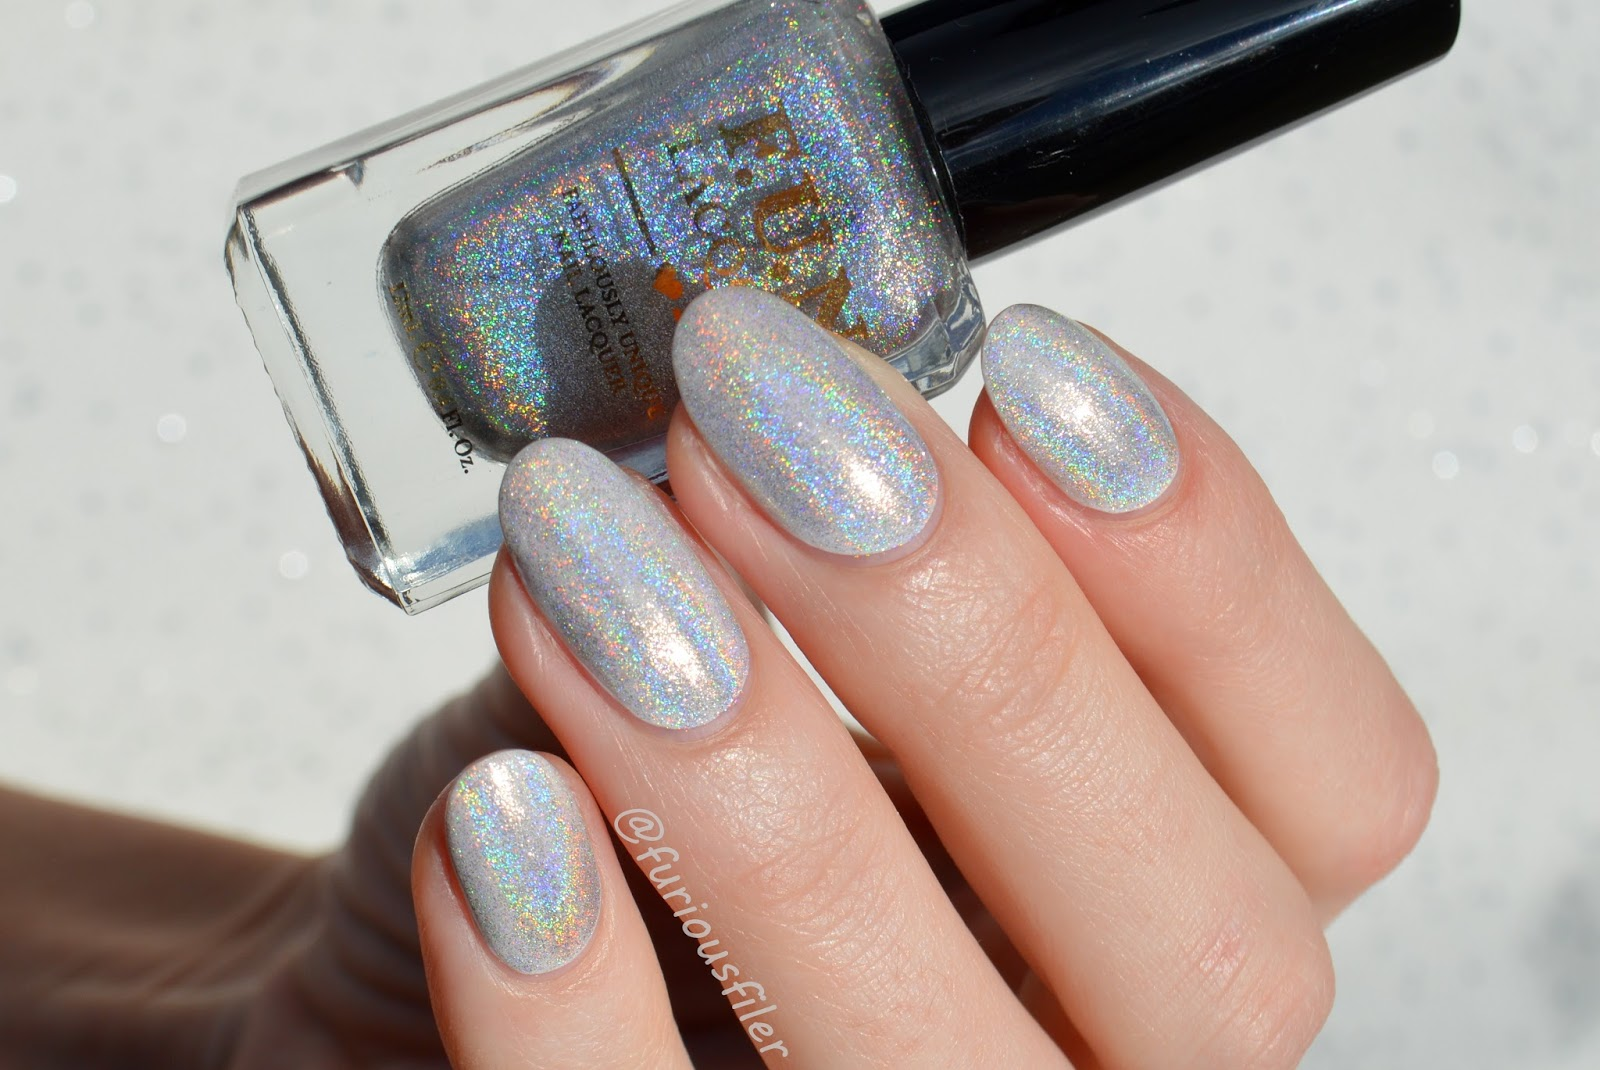 F.U.N. Lacquer Diamond Holo Top Coat: Swatches + Review - FURIOUS FILER